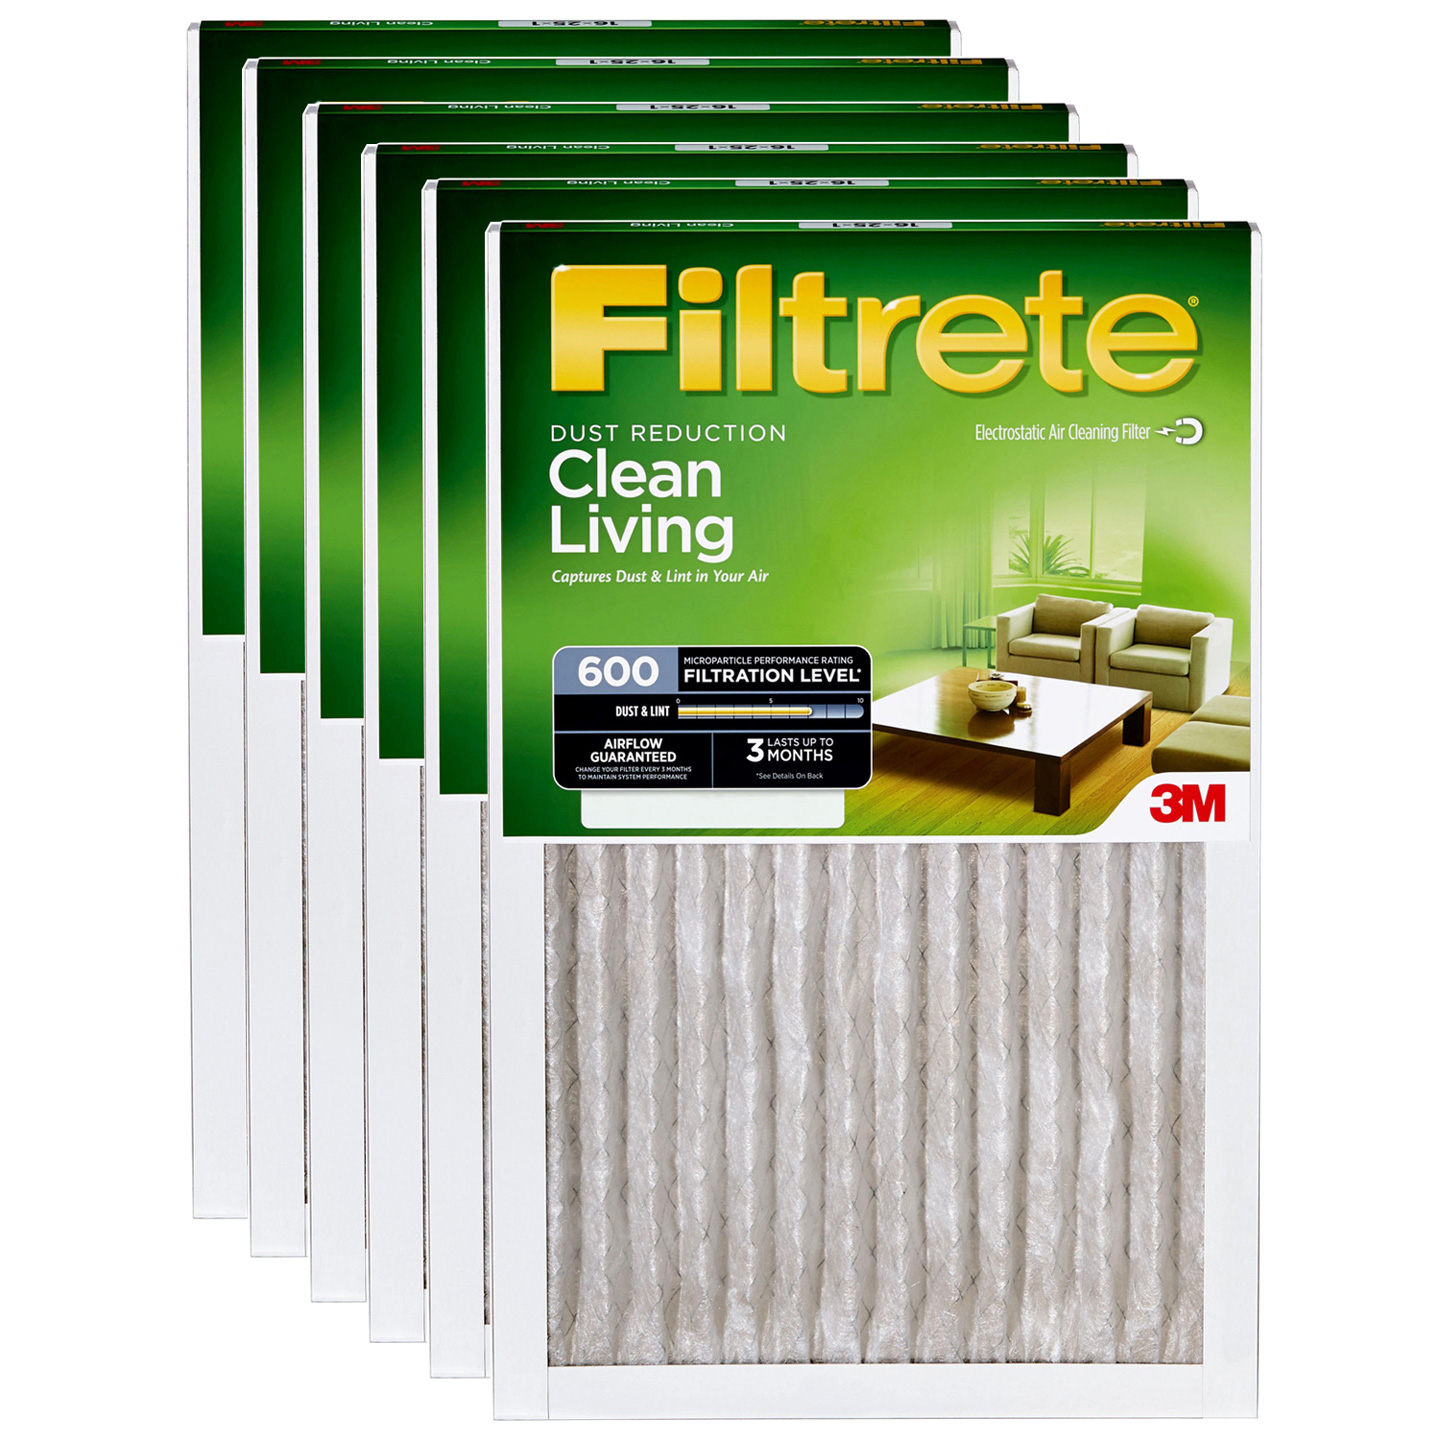 Filtrete 600 Dust Reduction Clean Living Filter - 18x18x1 (6-Pack) FILTRETE_DUST_18x18x1_6_PACK